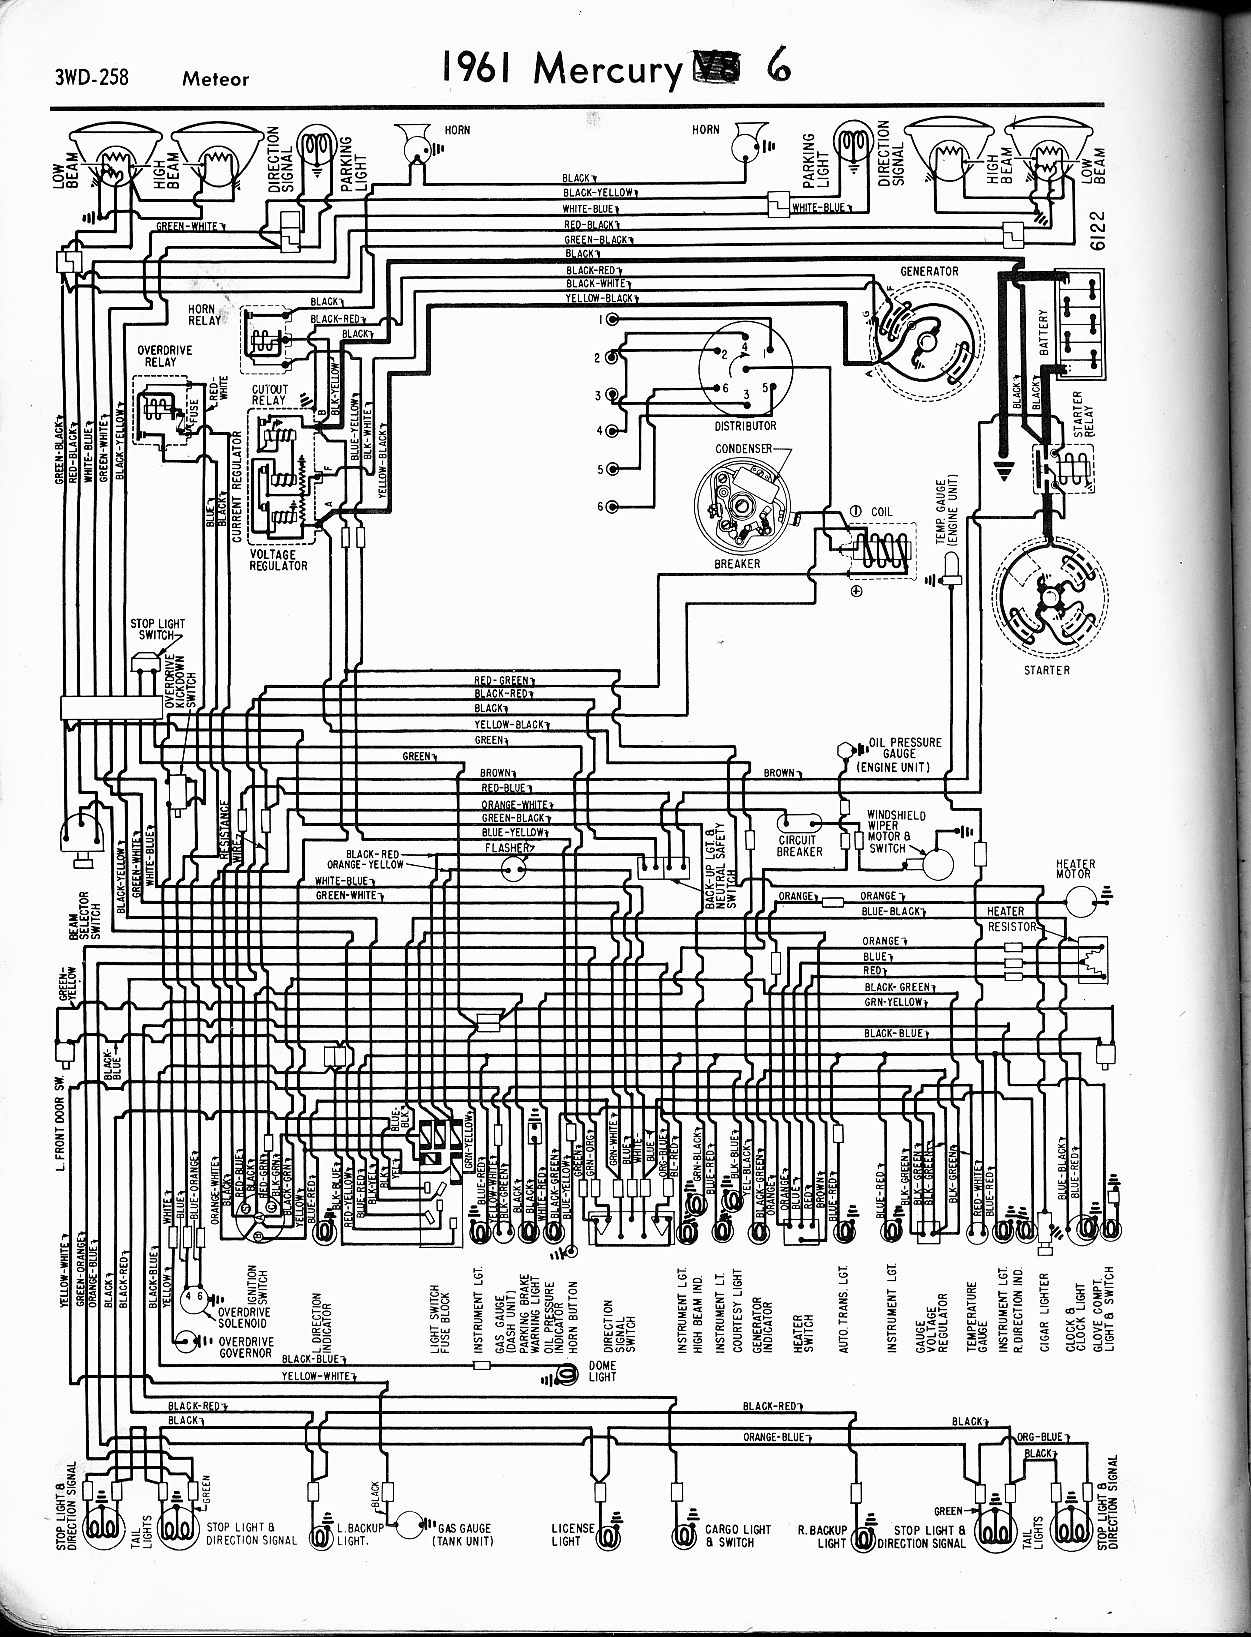 mercury wiring diagrams the old car manual project mercury wiring diagrams